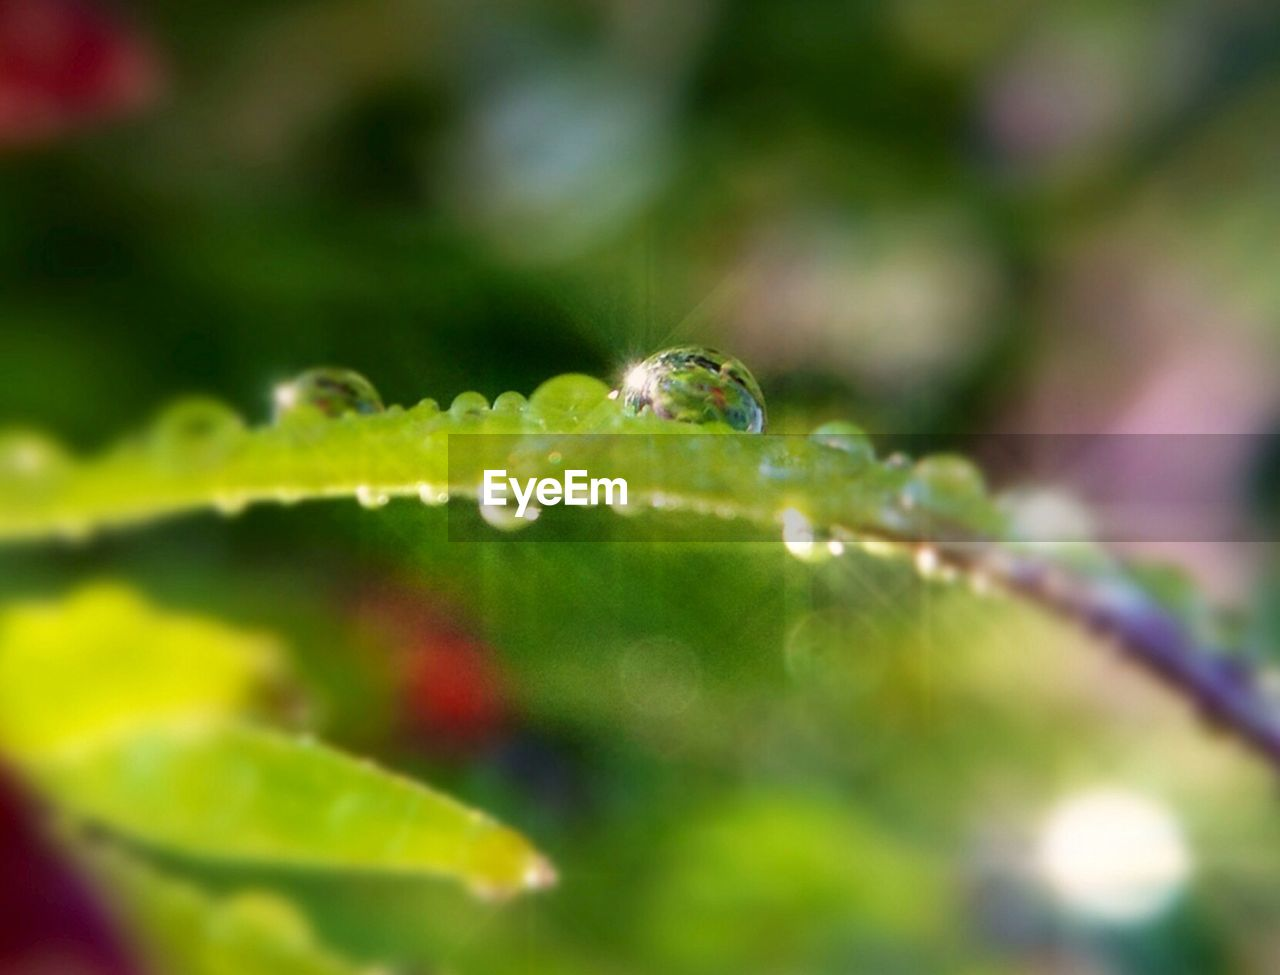 Close-up of water drops on leaf against blurred background